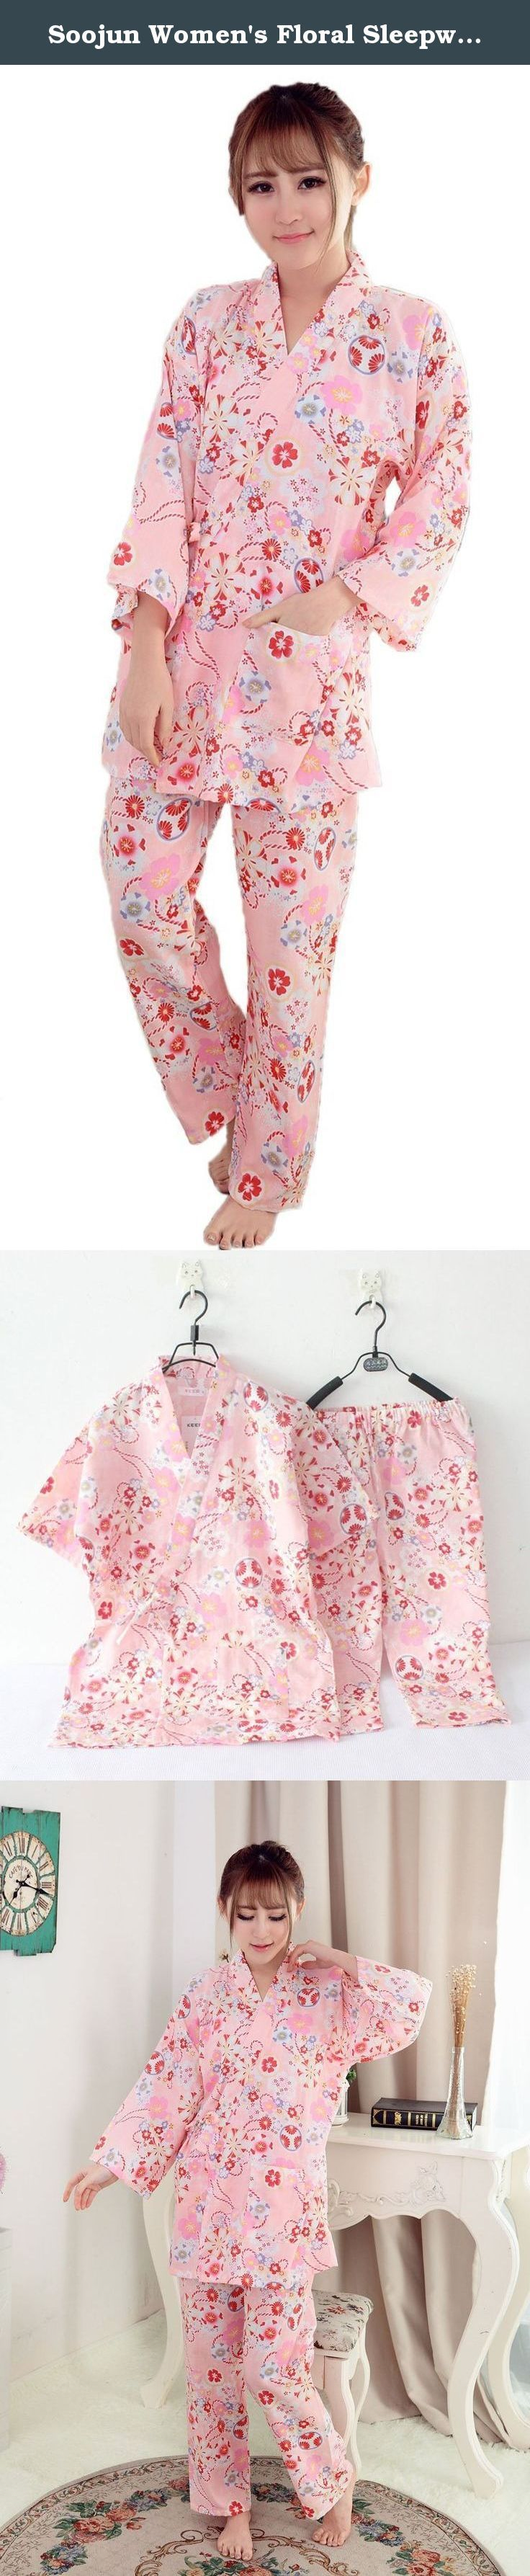 Soojun Women's Floral Sleepwear Kimono Robe and Pant Pajamas Set, US 6-10 Pink. We use post service (USPS, etc), express service (Fedex, DHL, UPS etc) to ship your package. You can easily get estimated delivery date when you place the order. We will never stop to pursuit your perfection. If you happen to have any other questions or concerns, please do not hesitate to contact us via e-mail. We will reply you within 8 hours by email. .